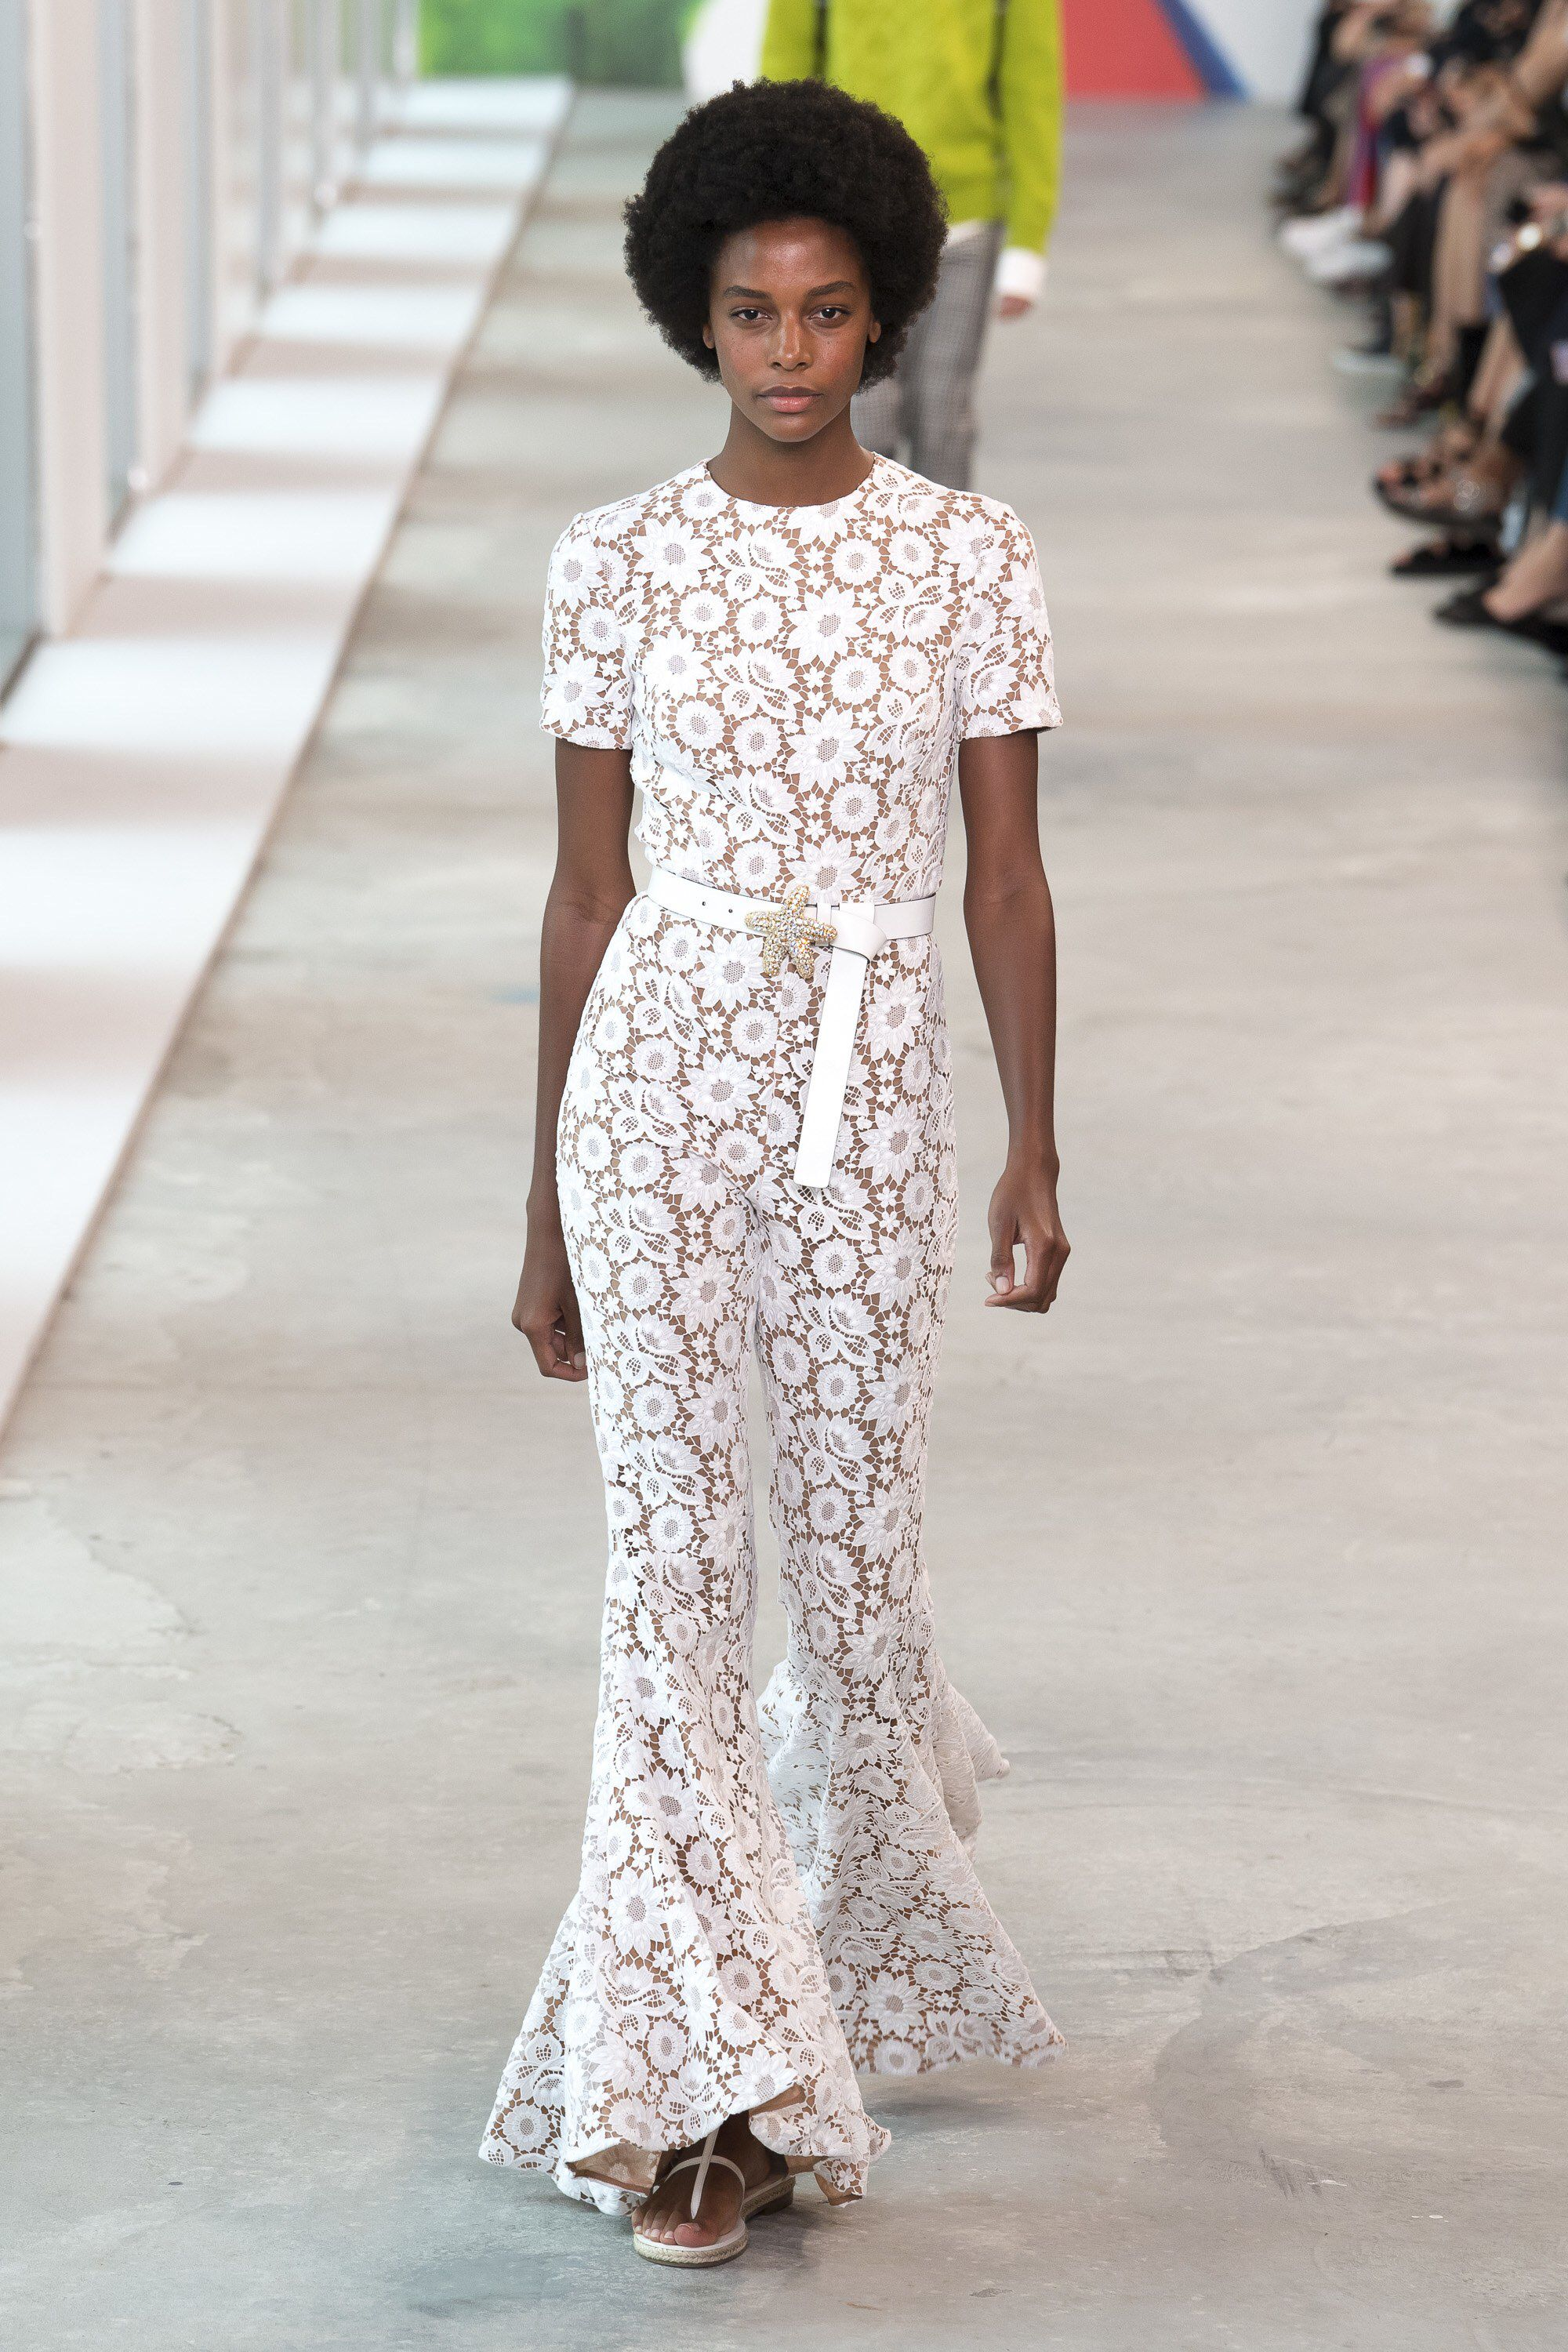 ac5259076215 Michael Kors Collection Spring 2019 Ready-to-Wear Fashion Show Collection   See the complete Michael Kors Collection Spring 2019 Ready-to-Wear  collection.